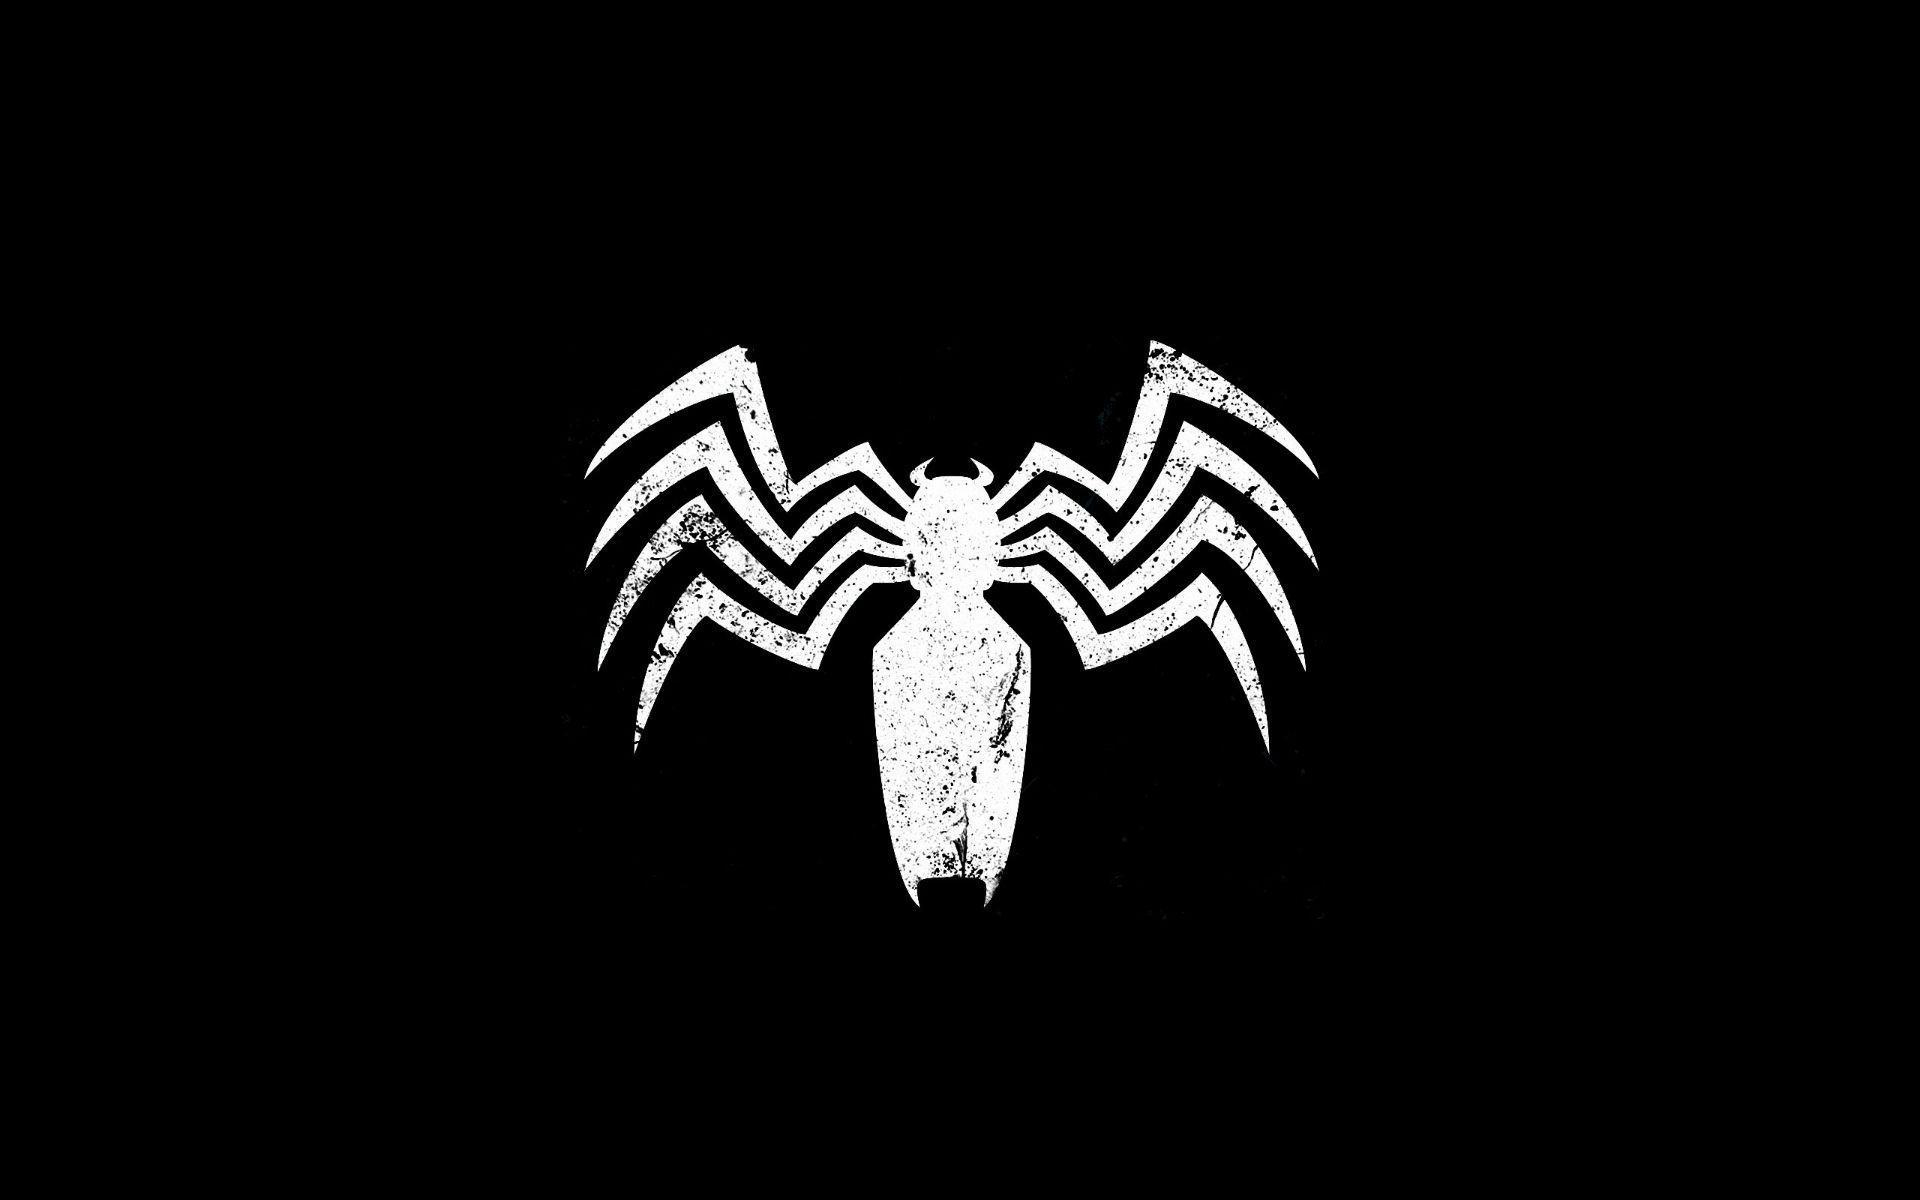 Black Spiderman Wallpapers - Full HD wallpaper search